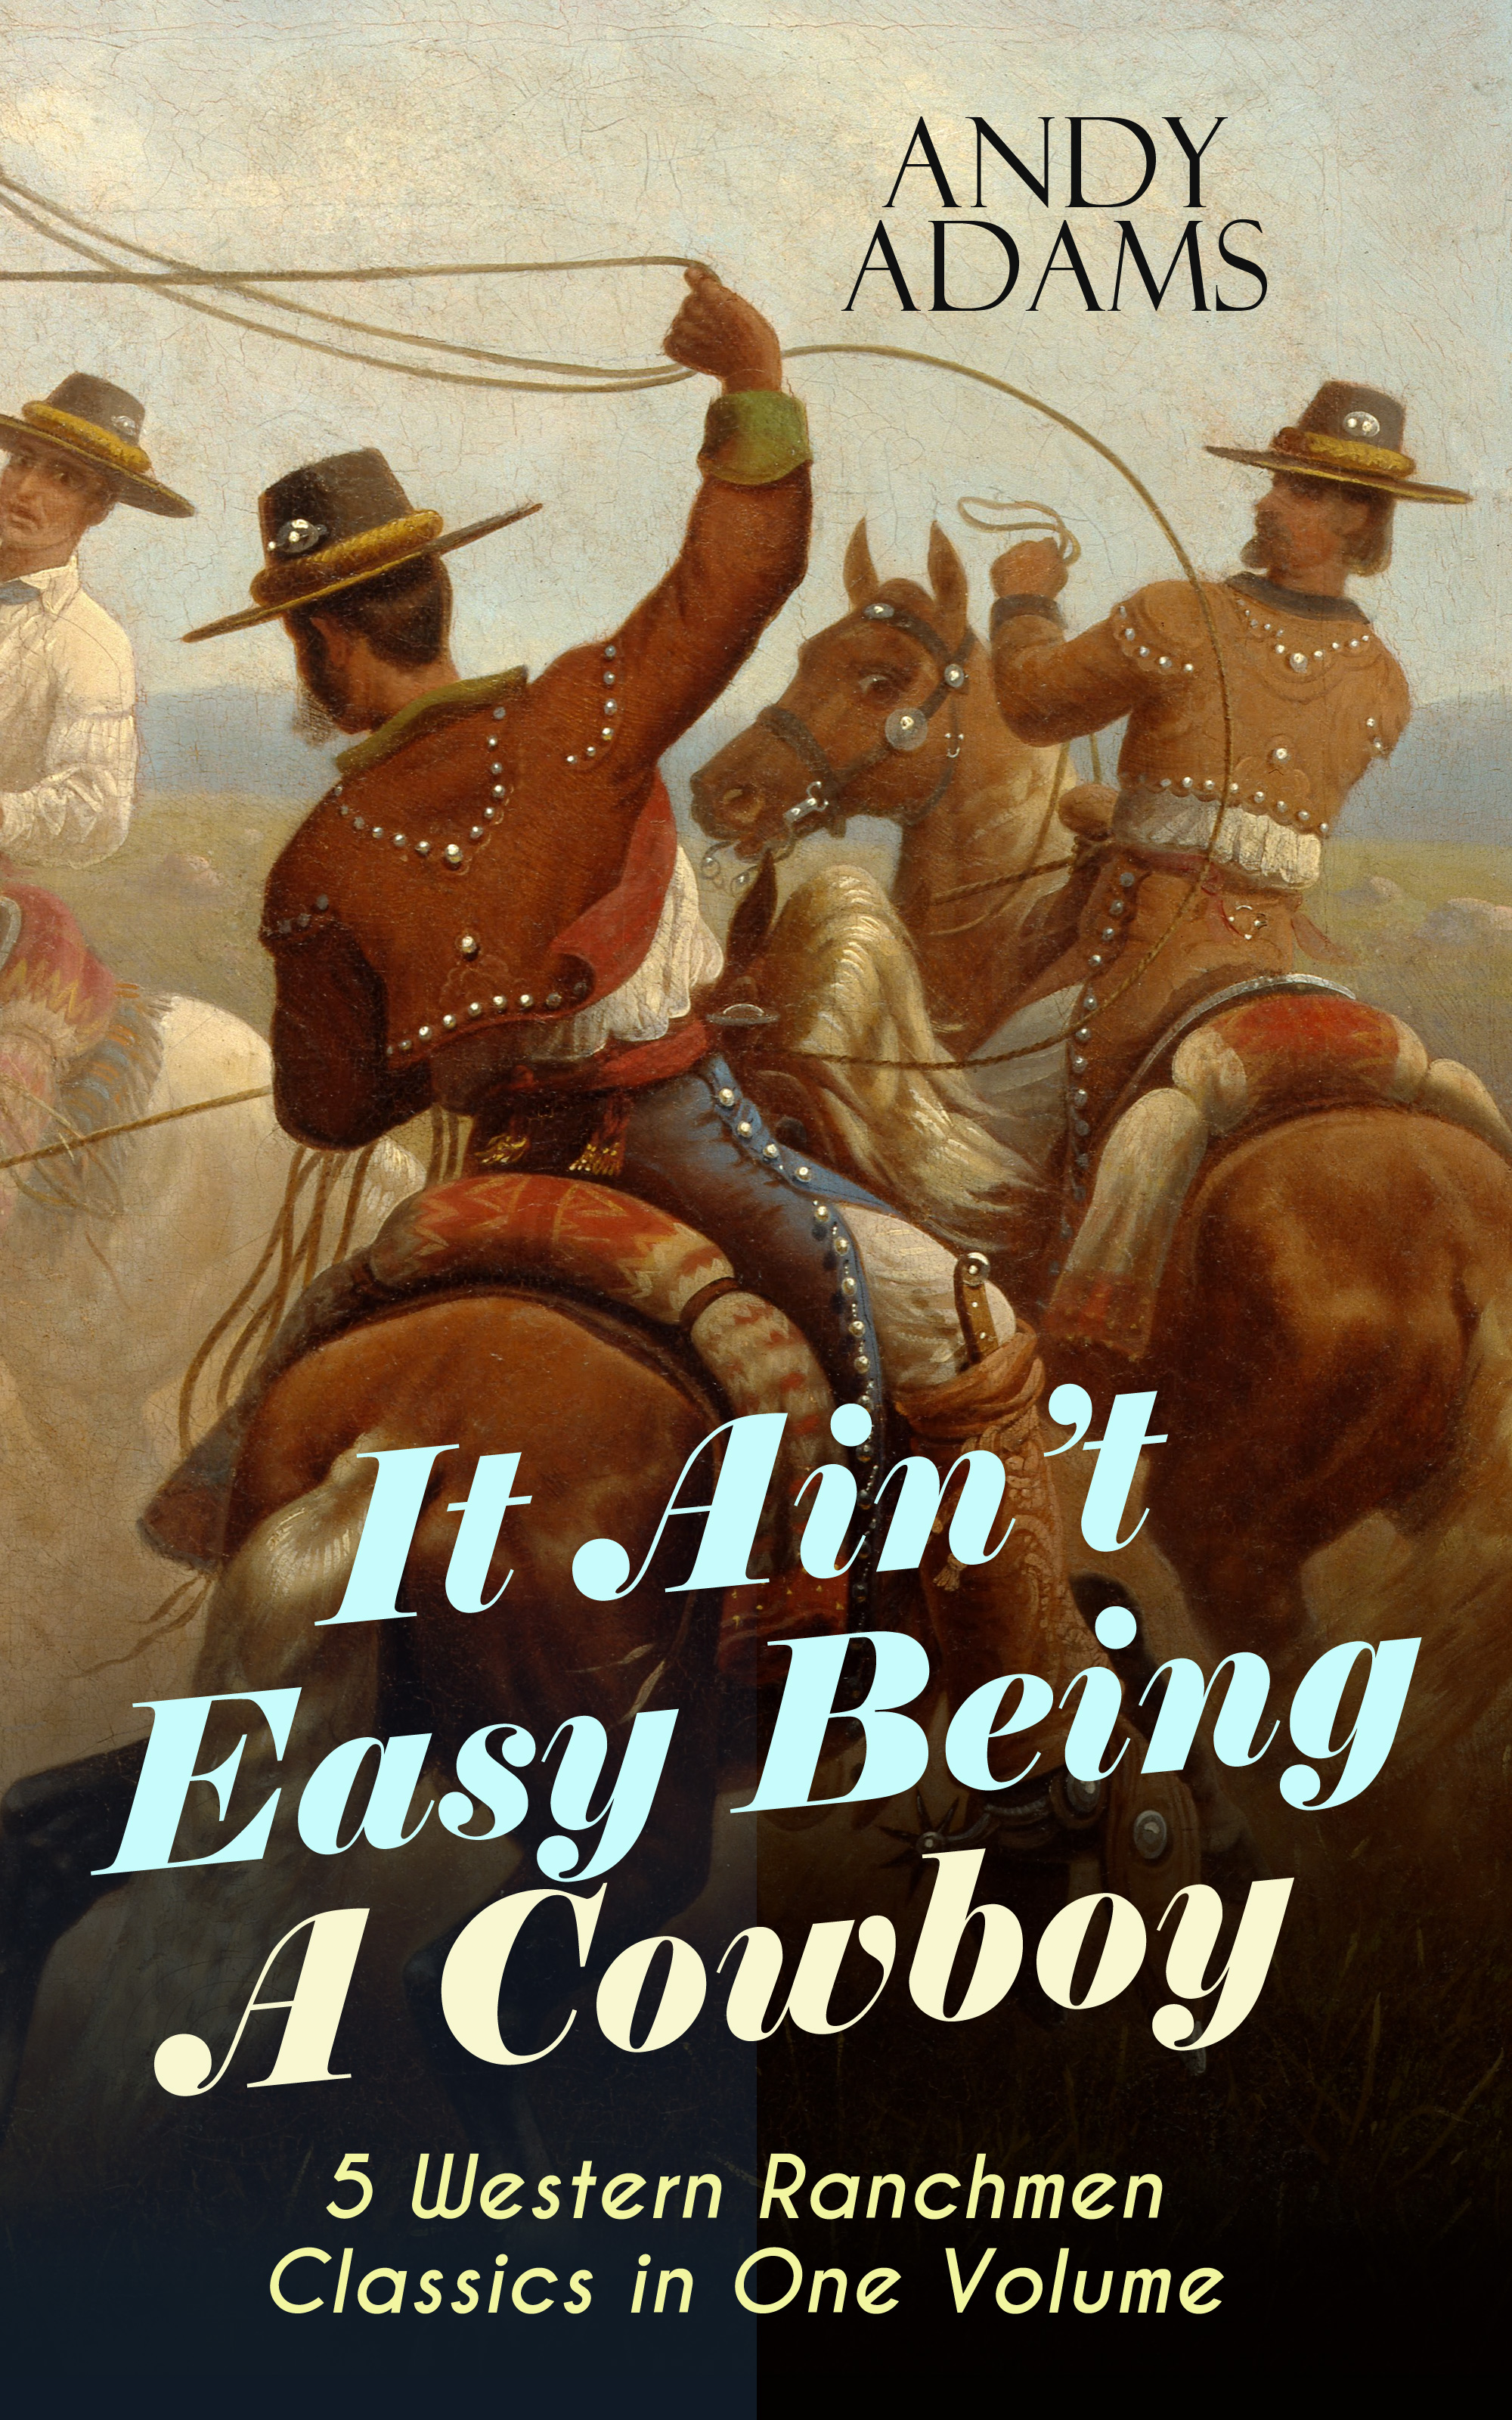 Adams Andy It Ain't Easy Being A Cowboy – 5 Western Ranchmen Classics in One Volume цена и фото